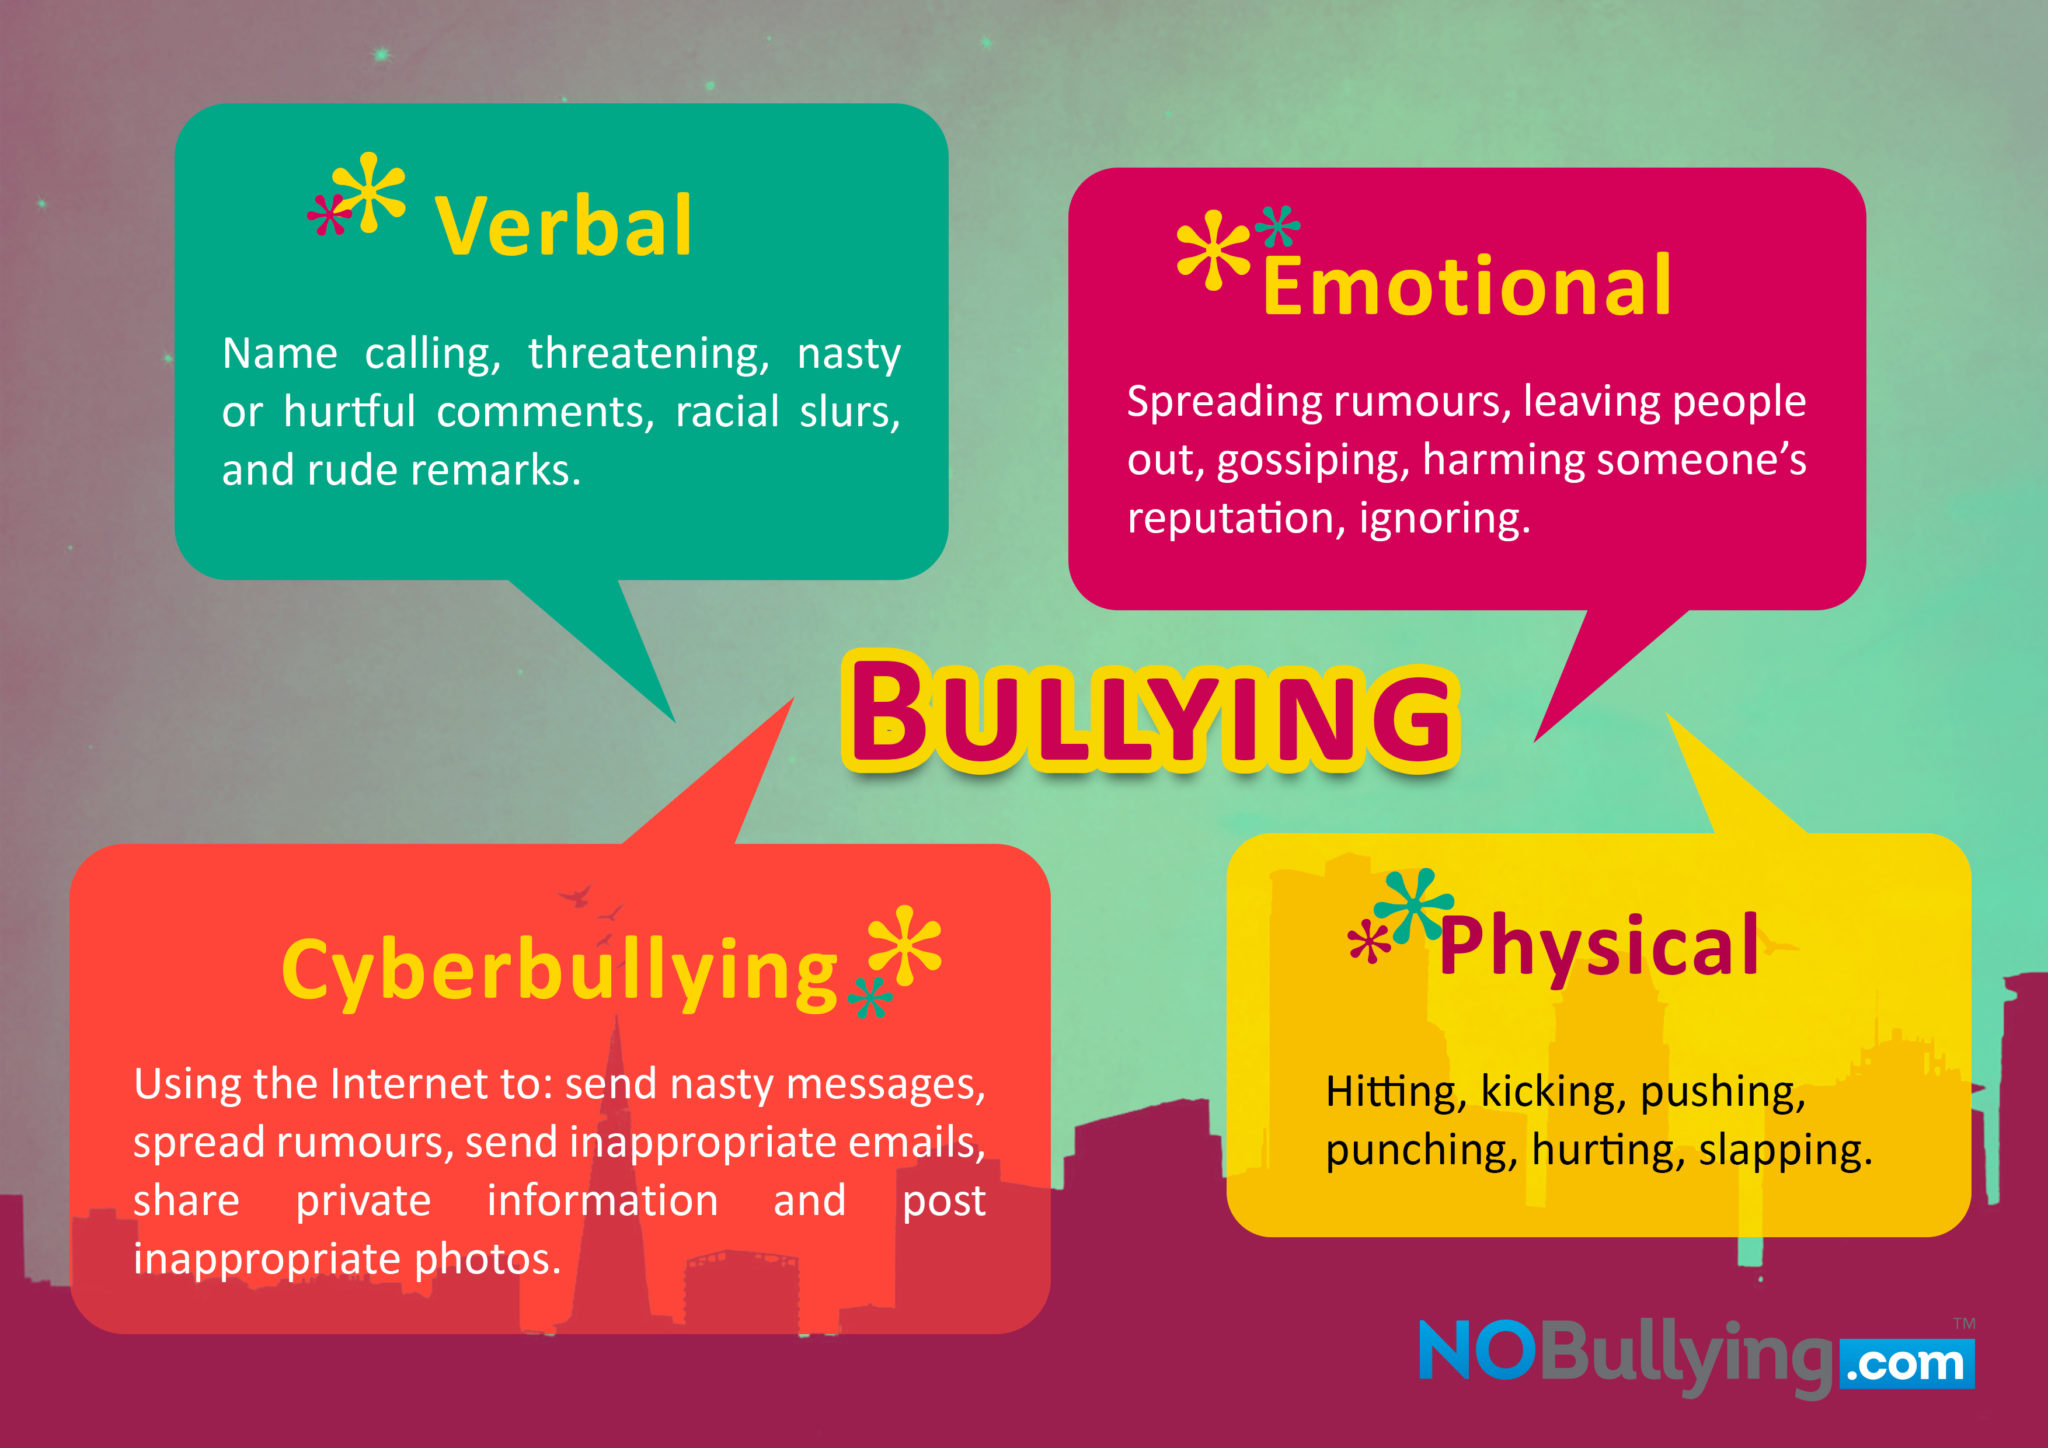 Bullying-Poster-What-are-the-different-types-of-Bullying.jpg